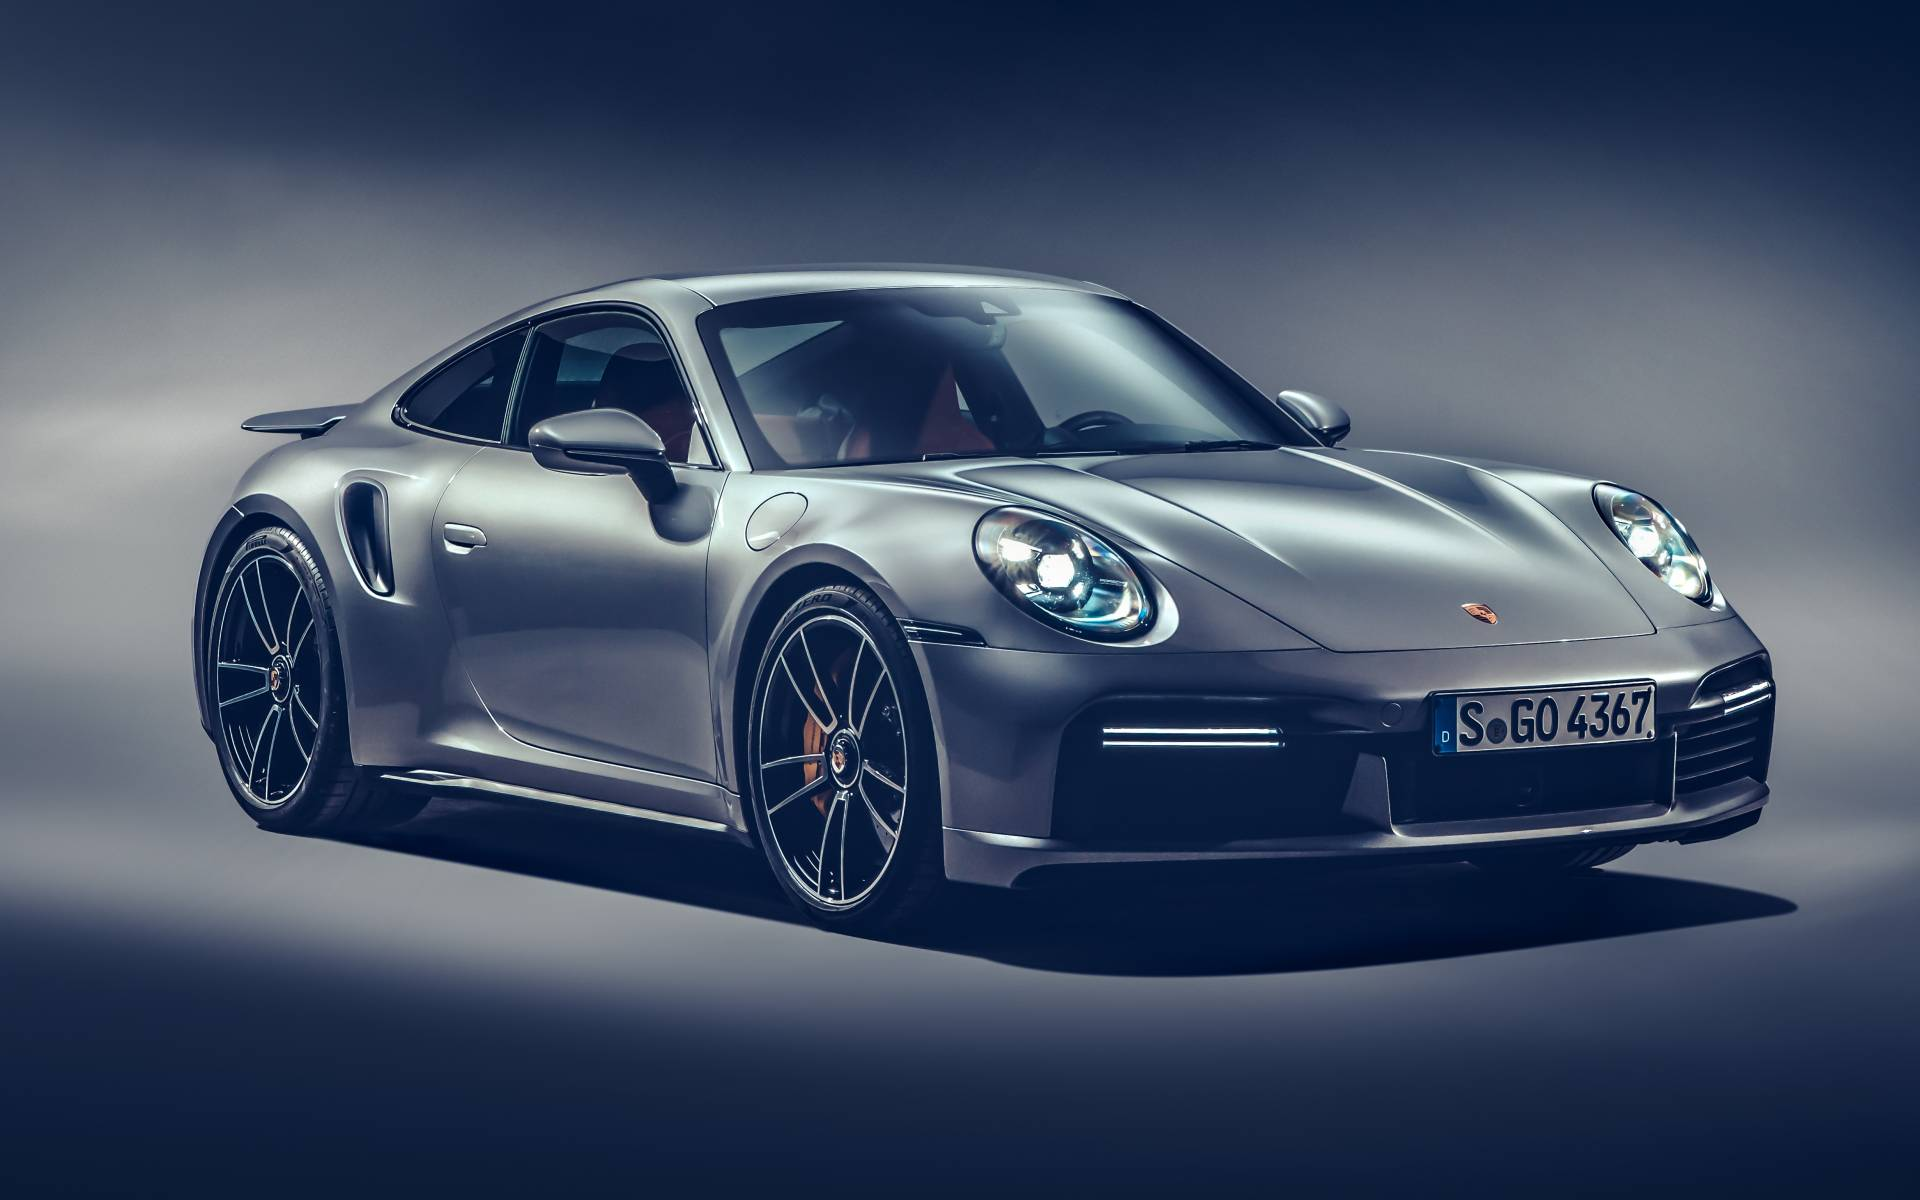 2021 Porsche 911 Turbo S Cranked Up To 641 Horsepower The Car Guide